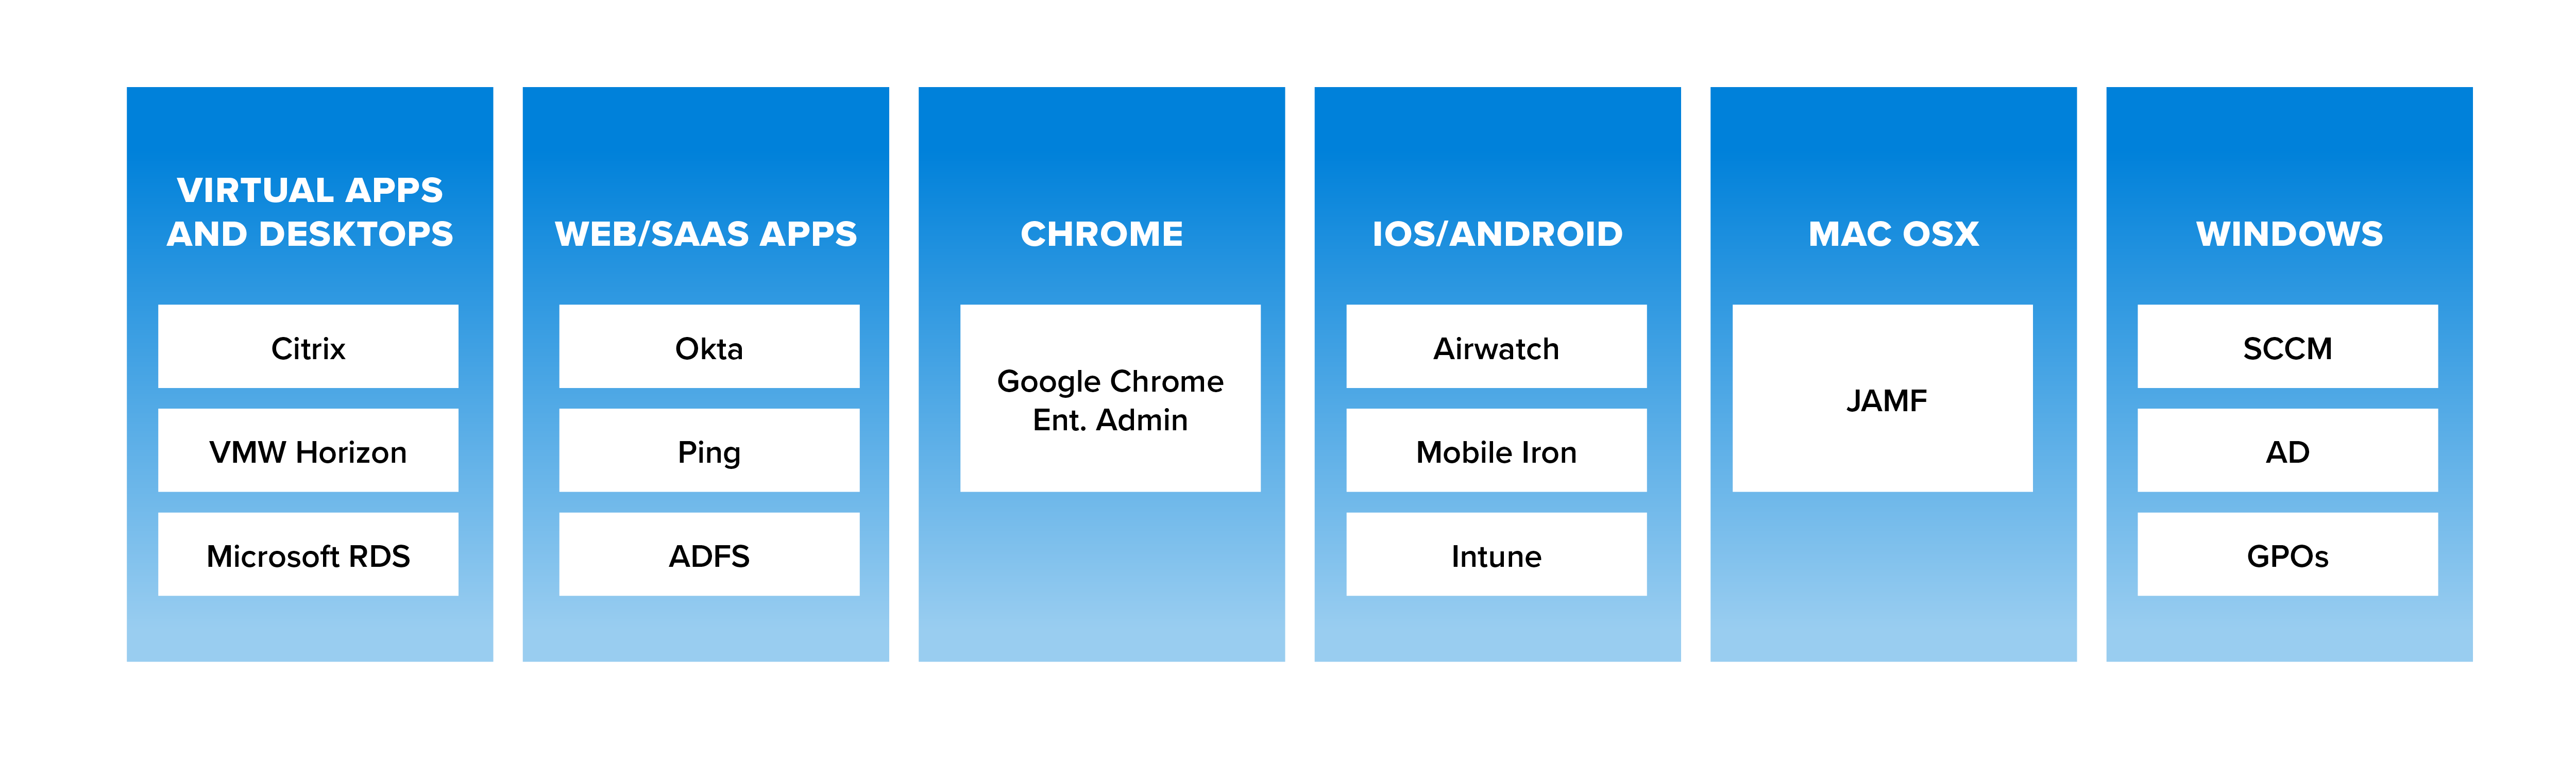 A diagram illustrating the various endpoint management tools available for each device type, including Virtual Apps and Desktops, Web/SaaS Apps, Chrome, iOS/Android, Mac OSX and Windows.